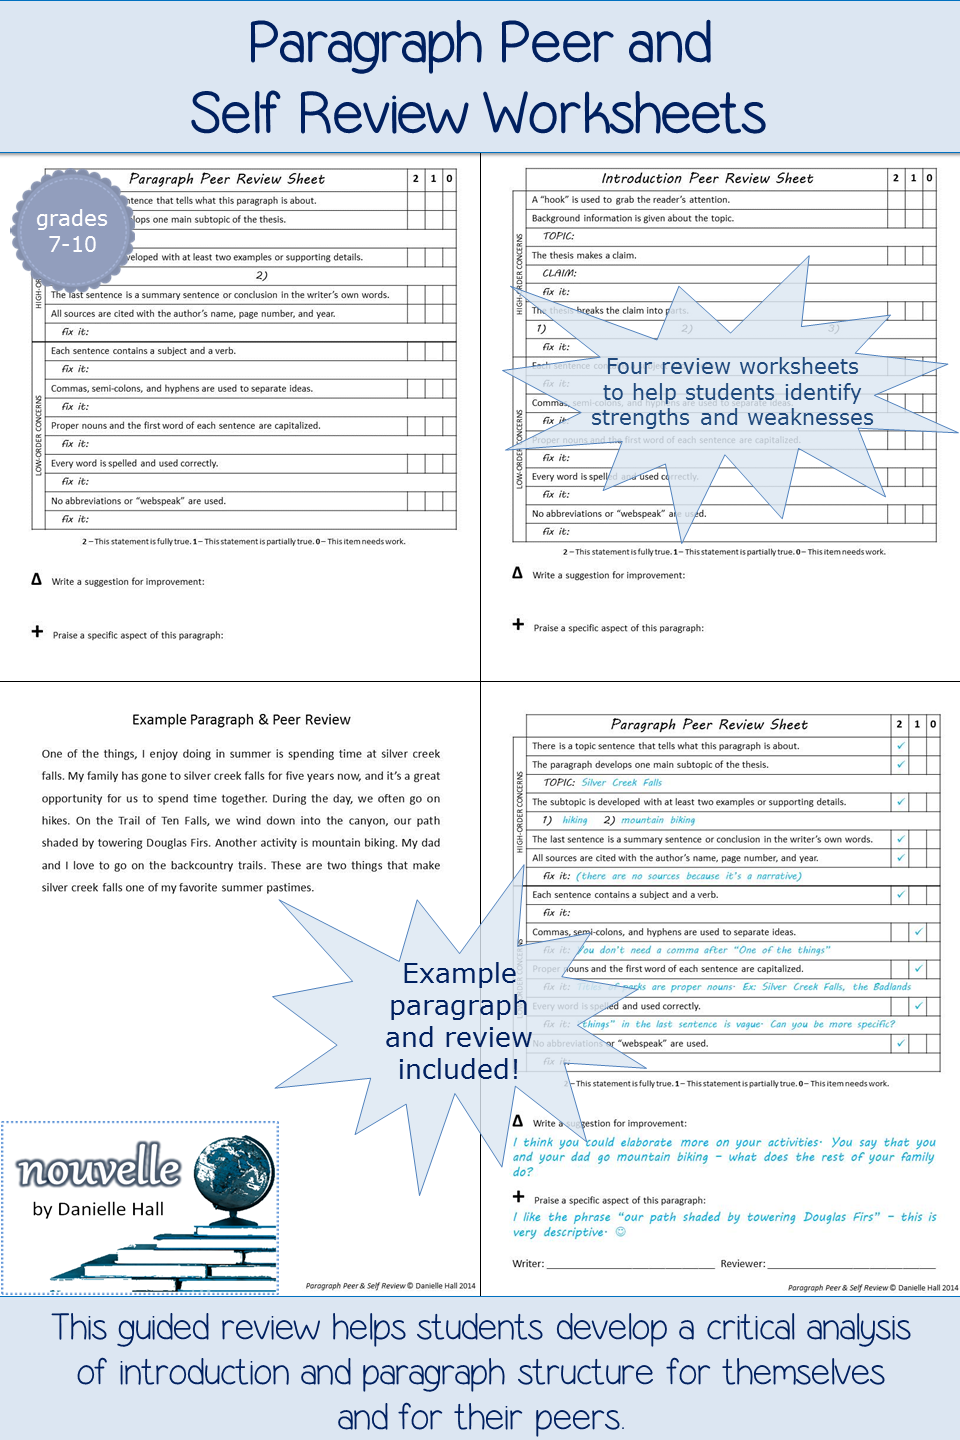 Paragraph peer and self review worksheets sample review included paragraph peer and self review worksheets sample review included spiritdancerdesigns Images